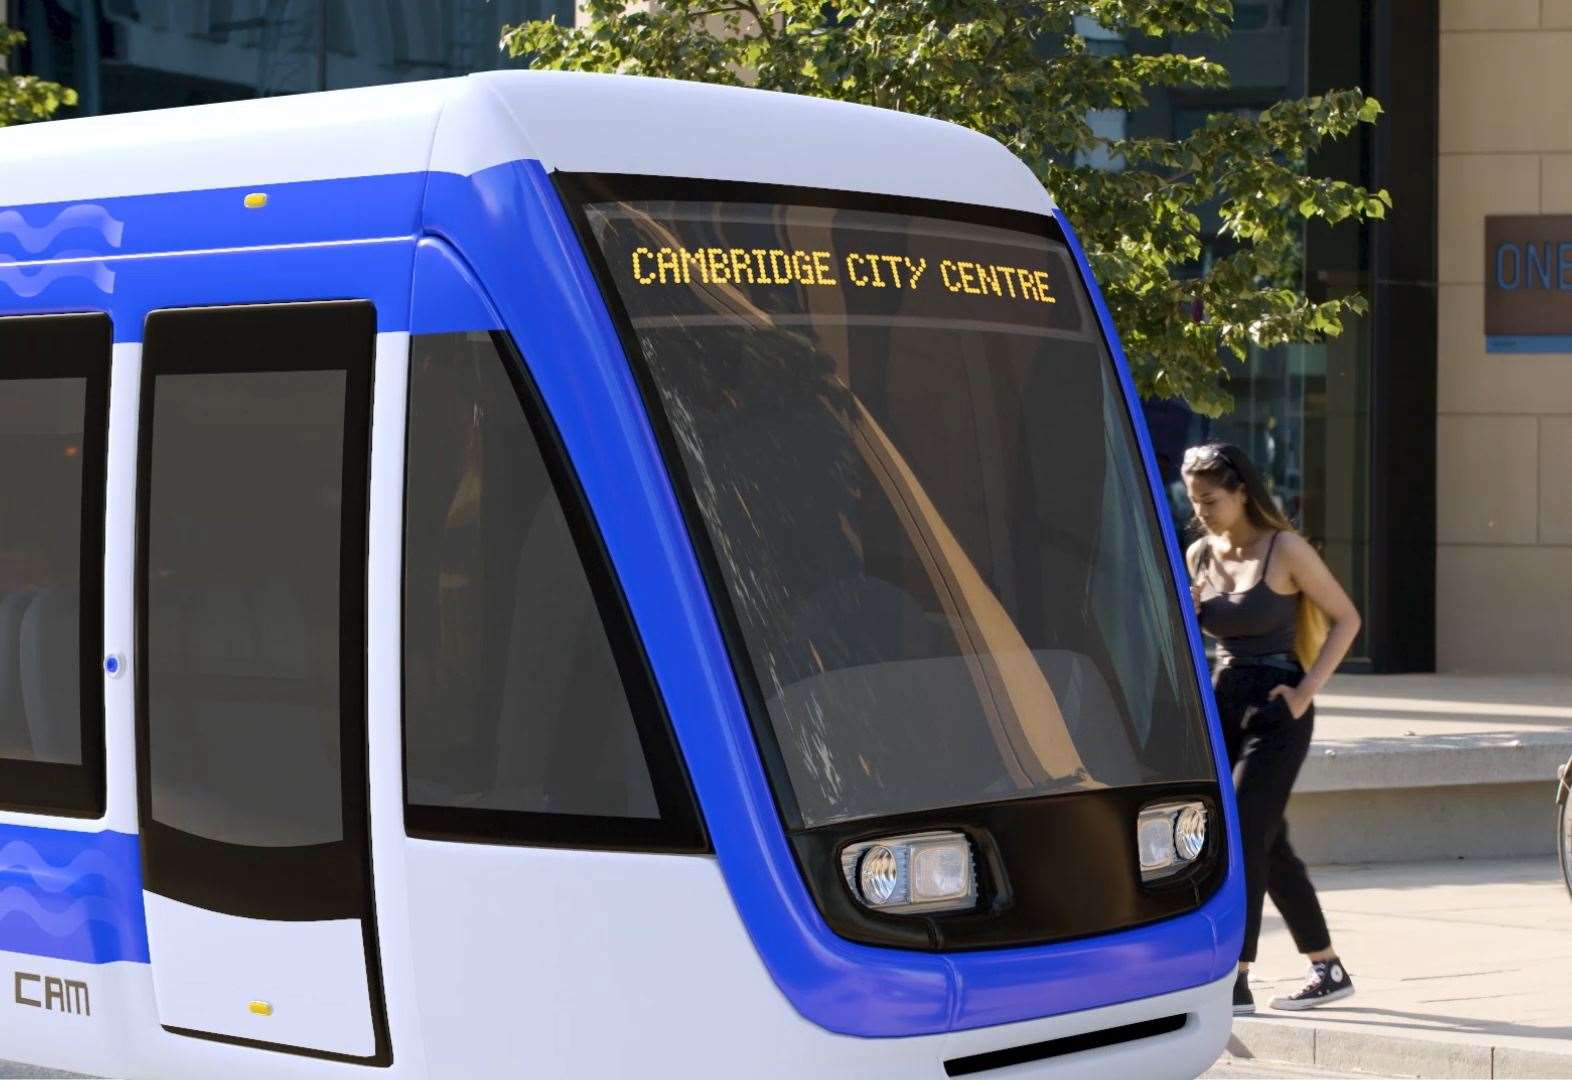 'Compelling case for creating £4bn metro system for Cambridge'